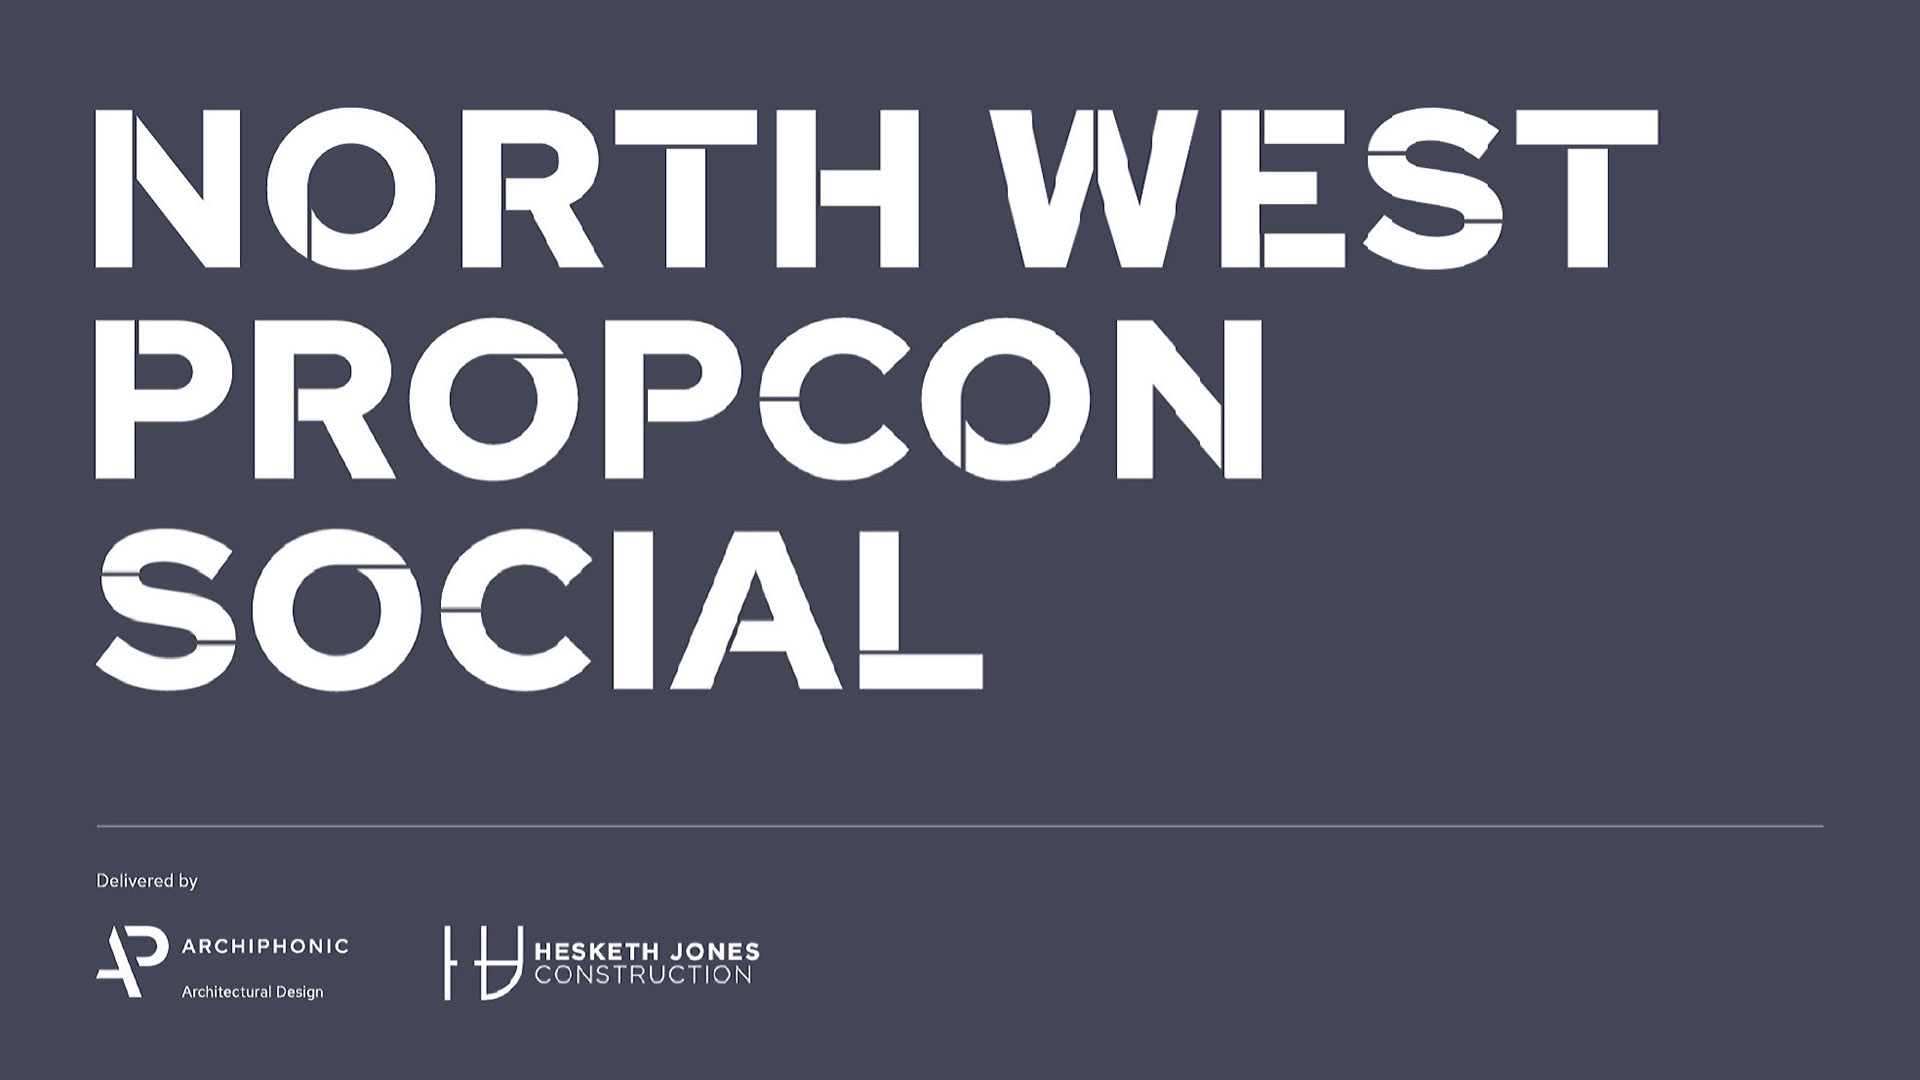 North West PropCon Social to host first live event